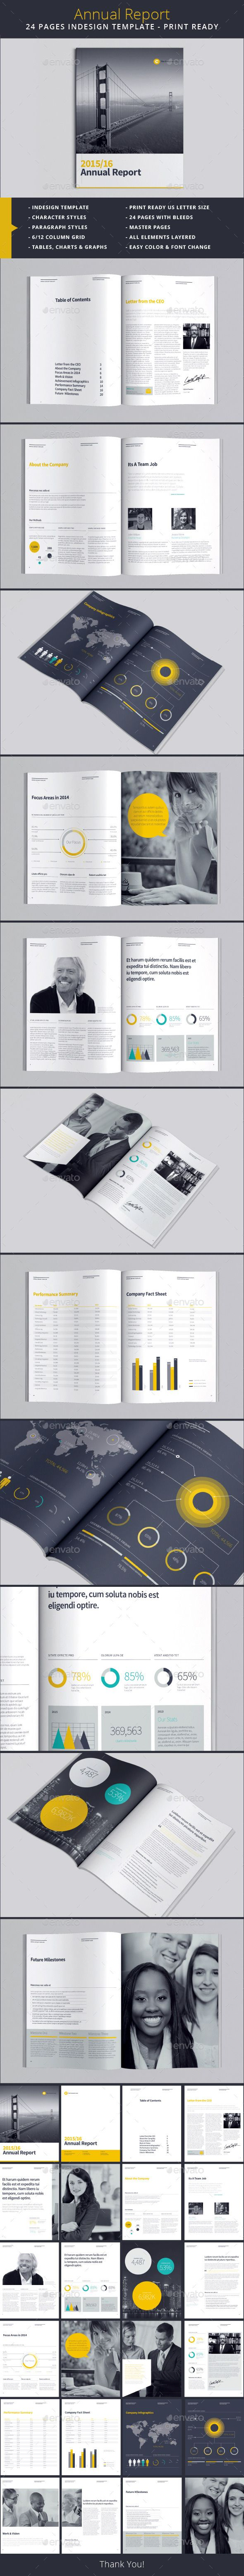 Annual Report Template — InDesign INDD #pie charts #annual report • Available here → https://graphicriver.net/item/annual-report-template/13308774?ref=pxcr